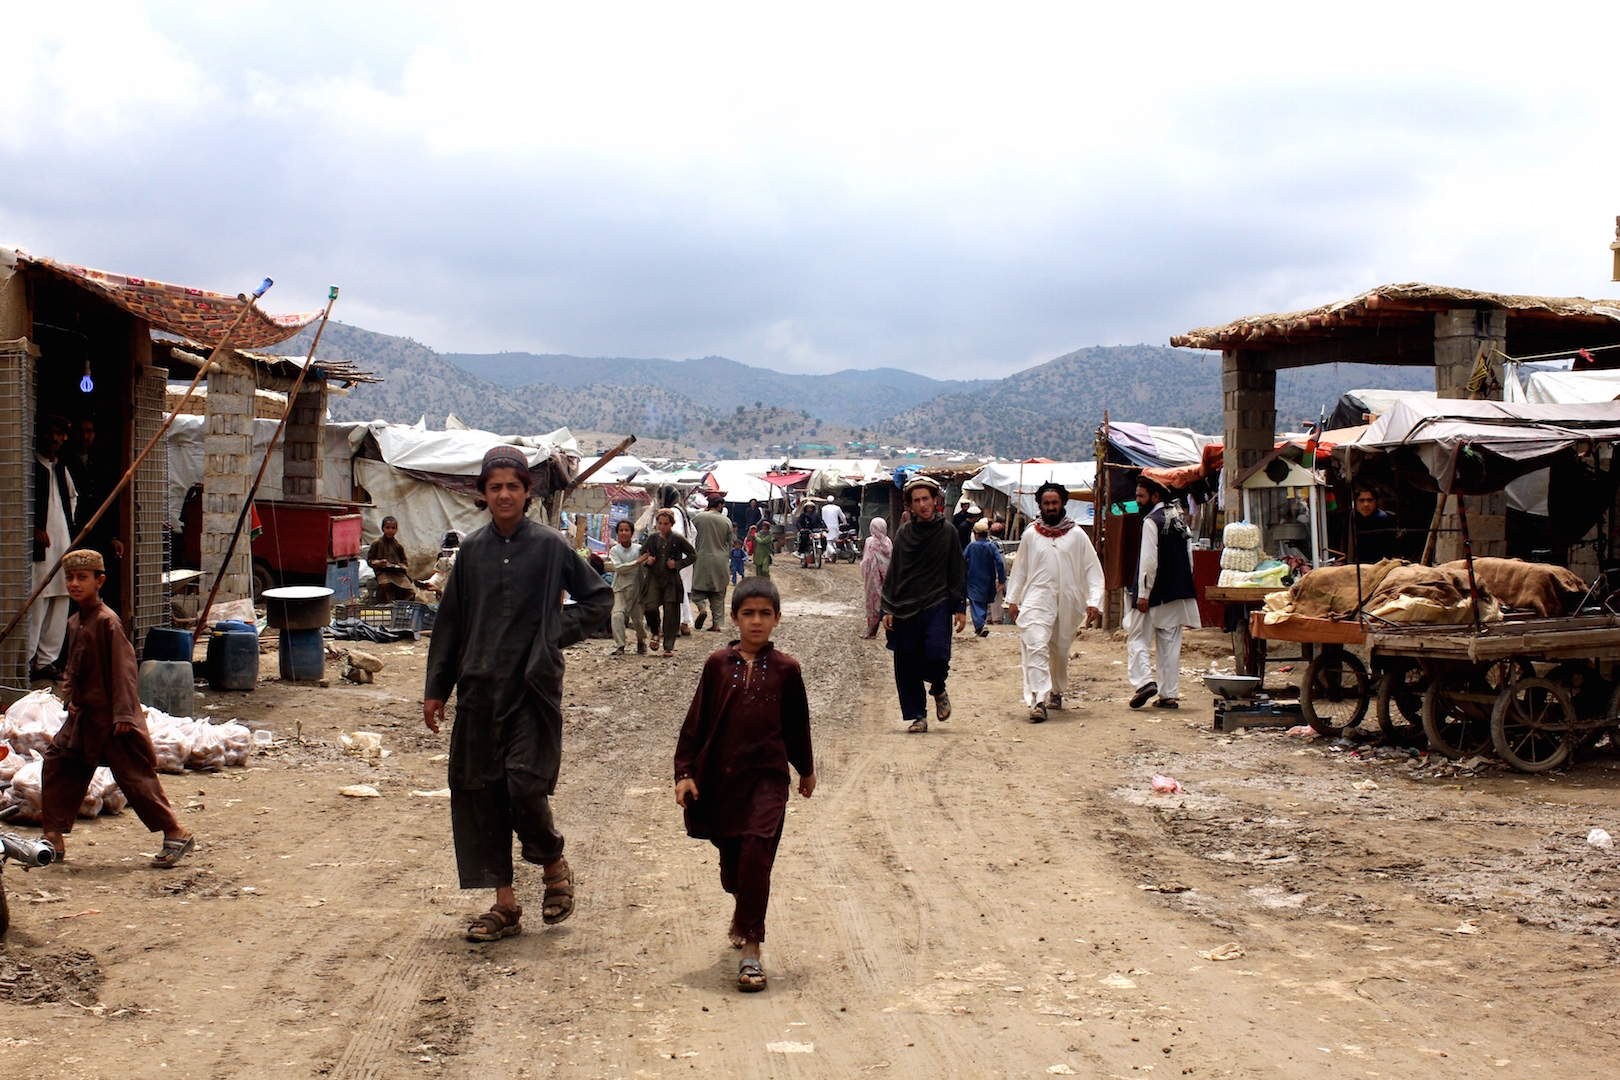 The growing permanence of the Golan refugee camp in Afghanistan's Khost province can be seen in the bazaar that has sprung up in the camp, seen here on 12 May 2015